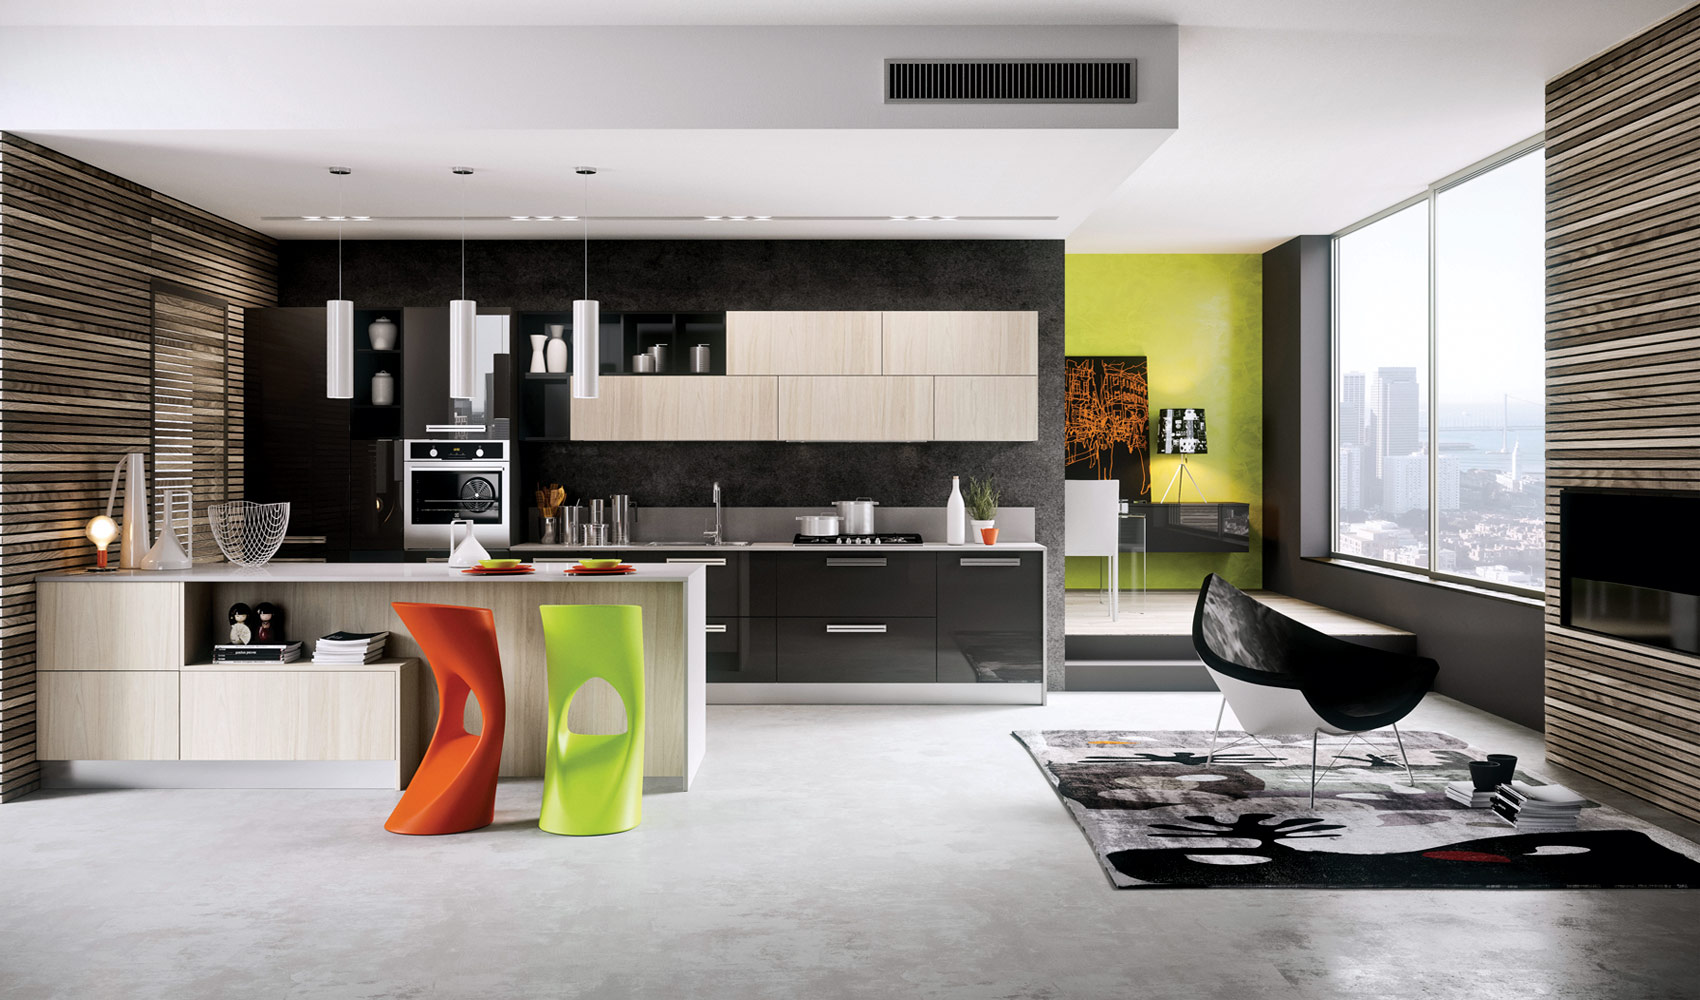 Kitchen designs that pop - Pics of kitchen designs ...